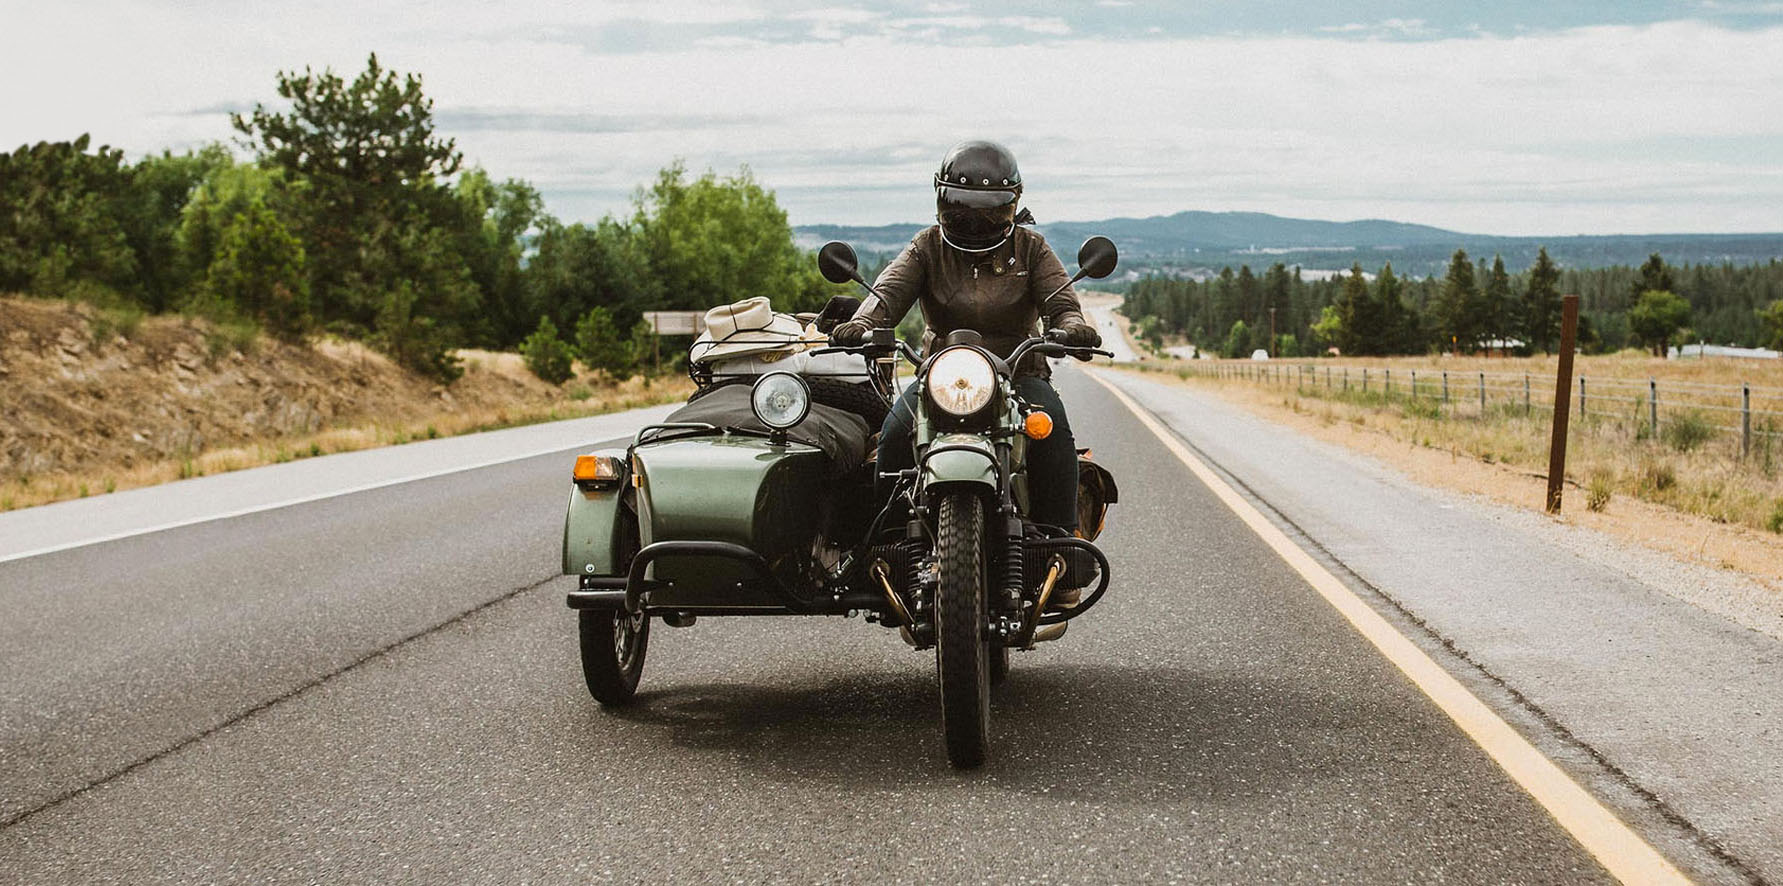 Ural on the way2